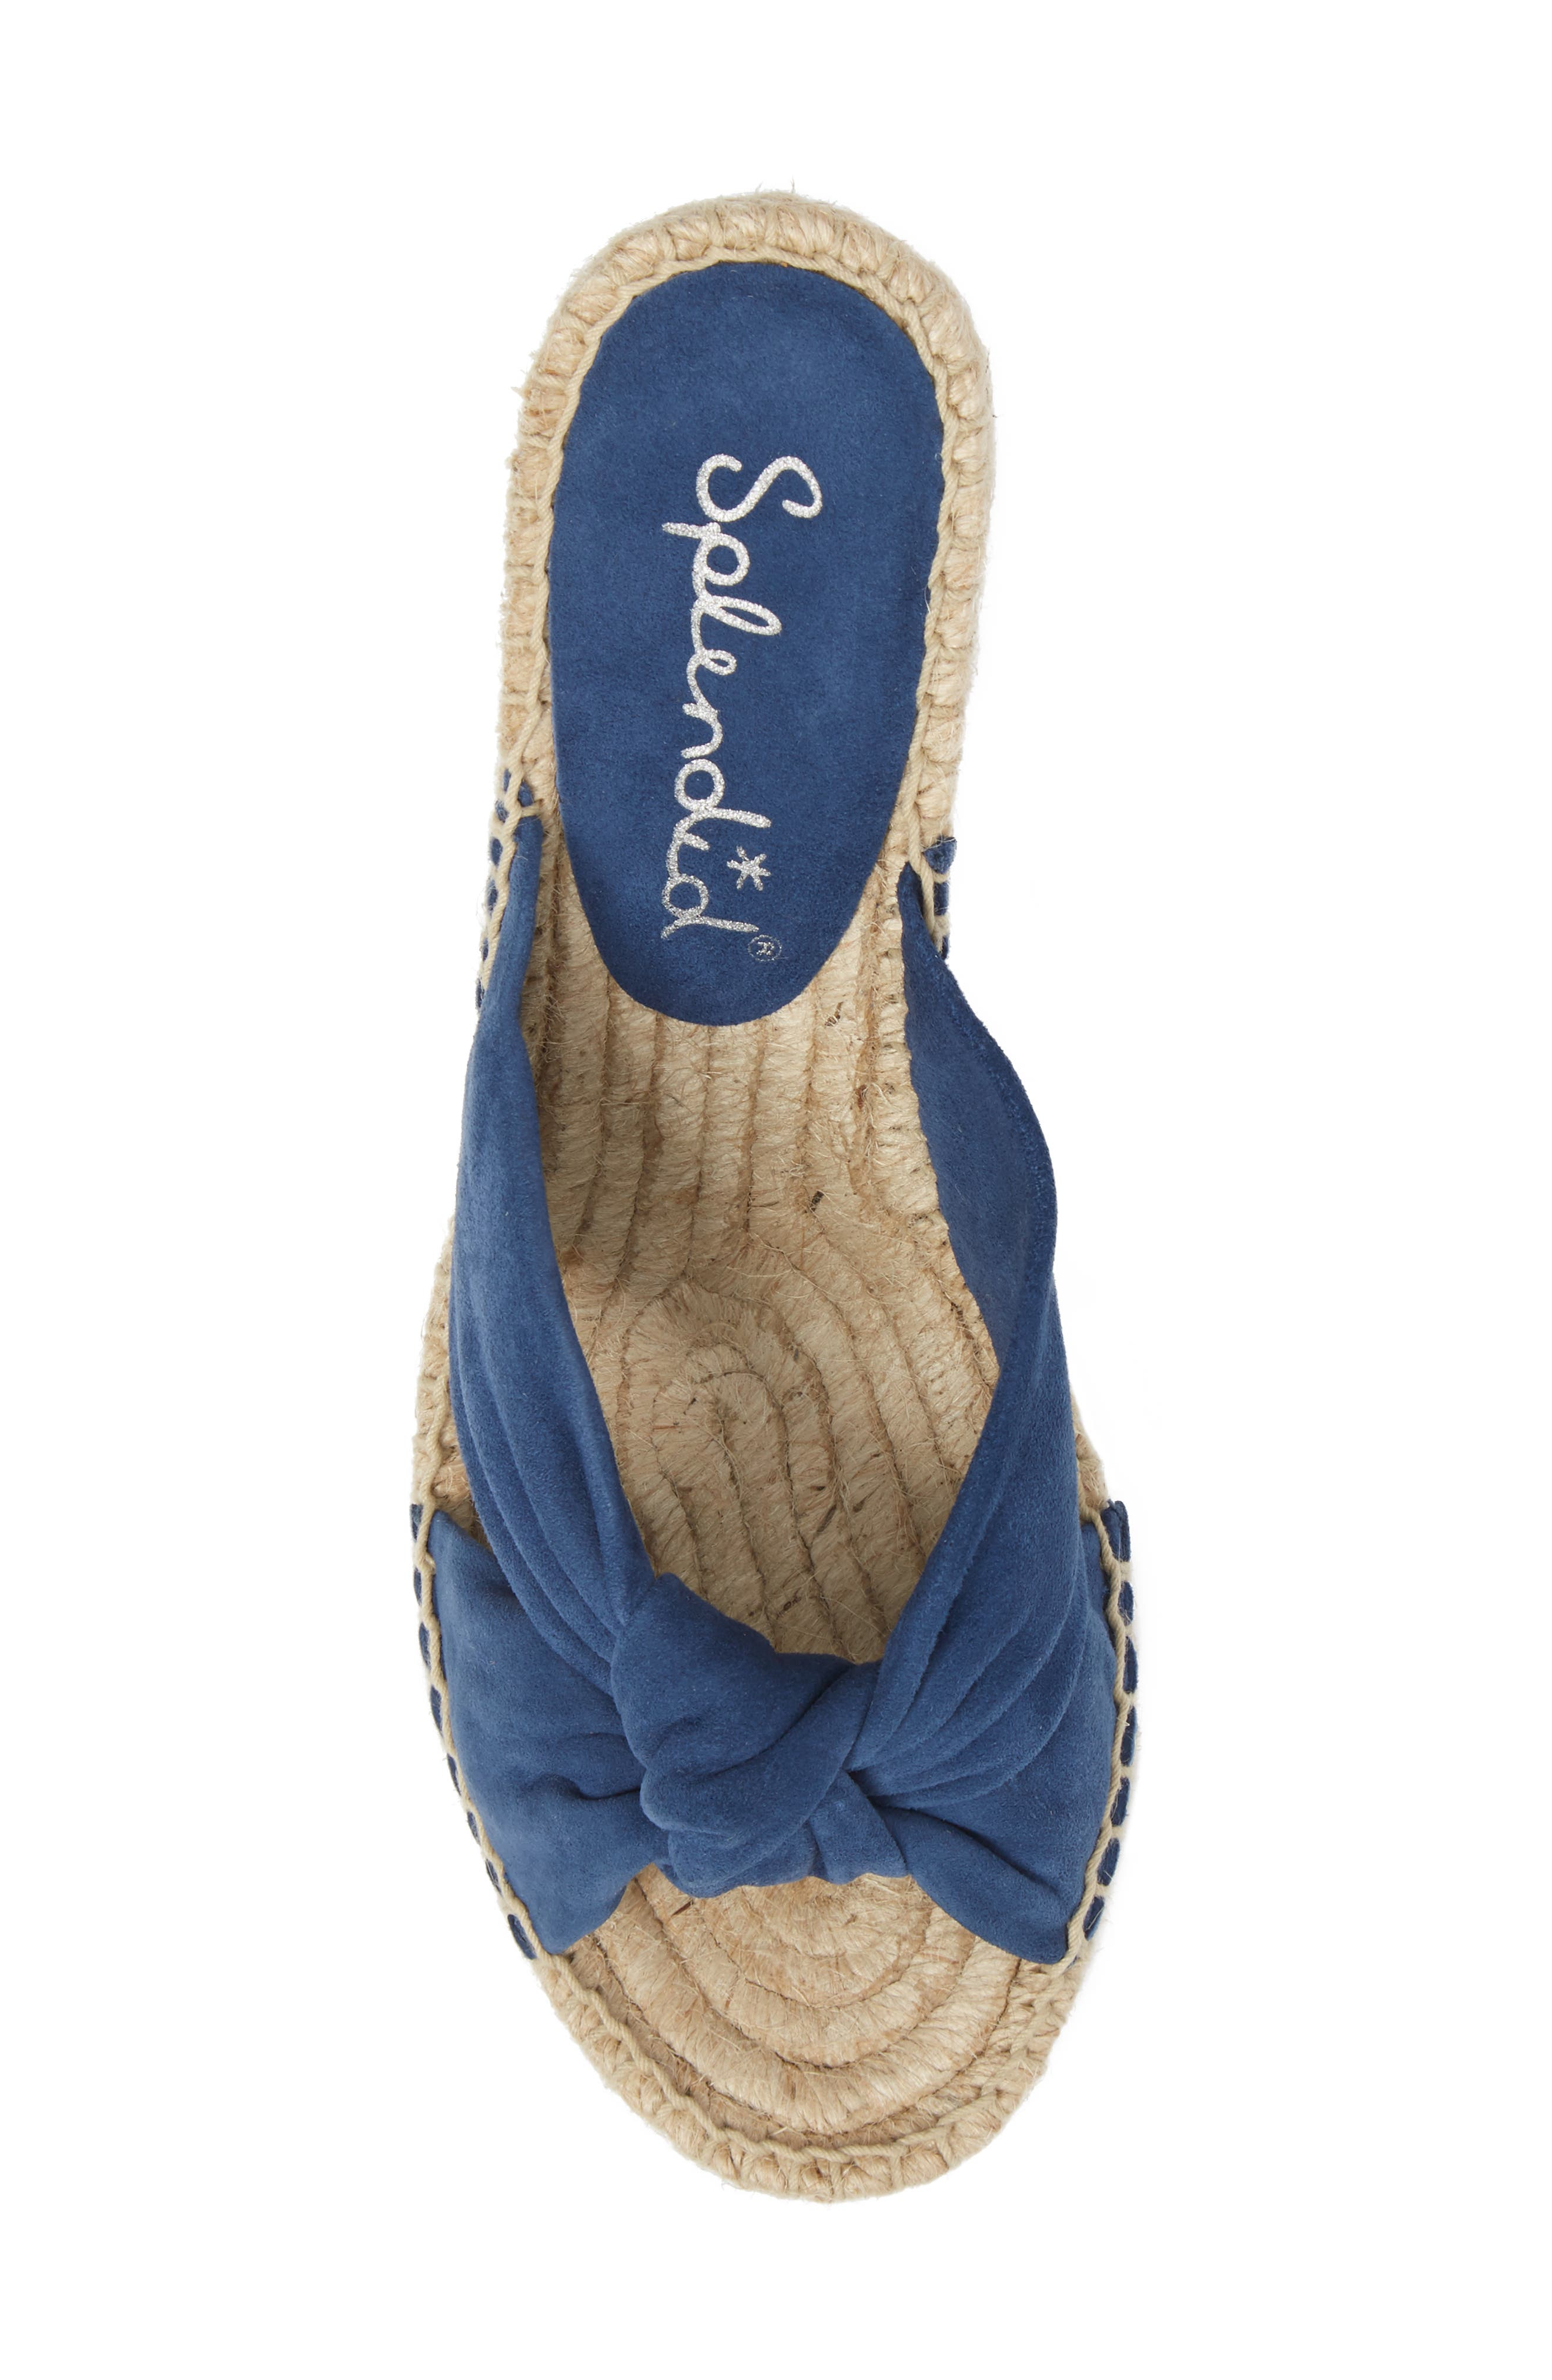 Bautista Knotted Wedge Sandal,                             Alternate thumbnail 5, color,                             DENIM FABRIC